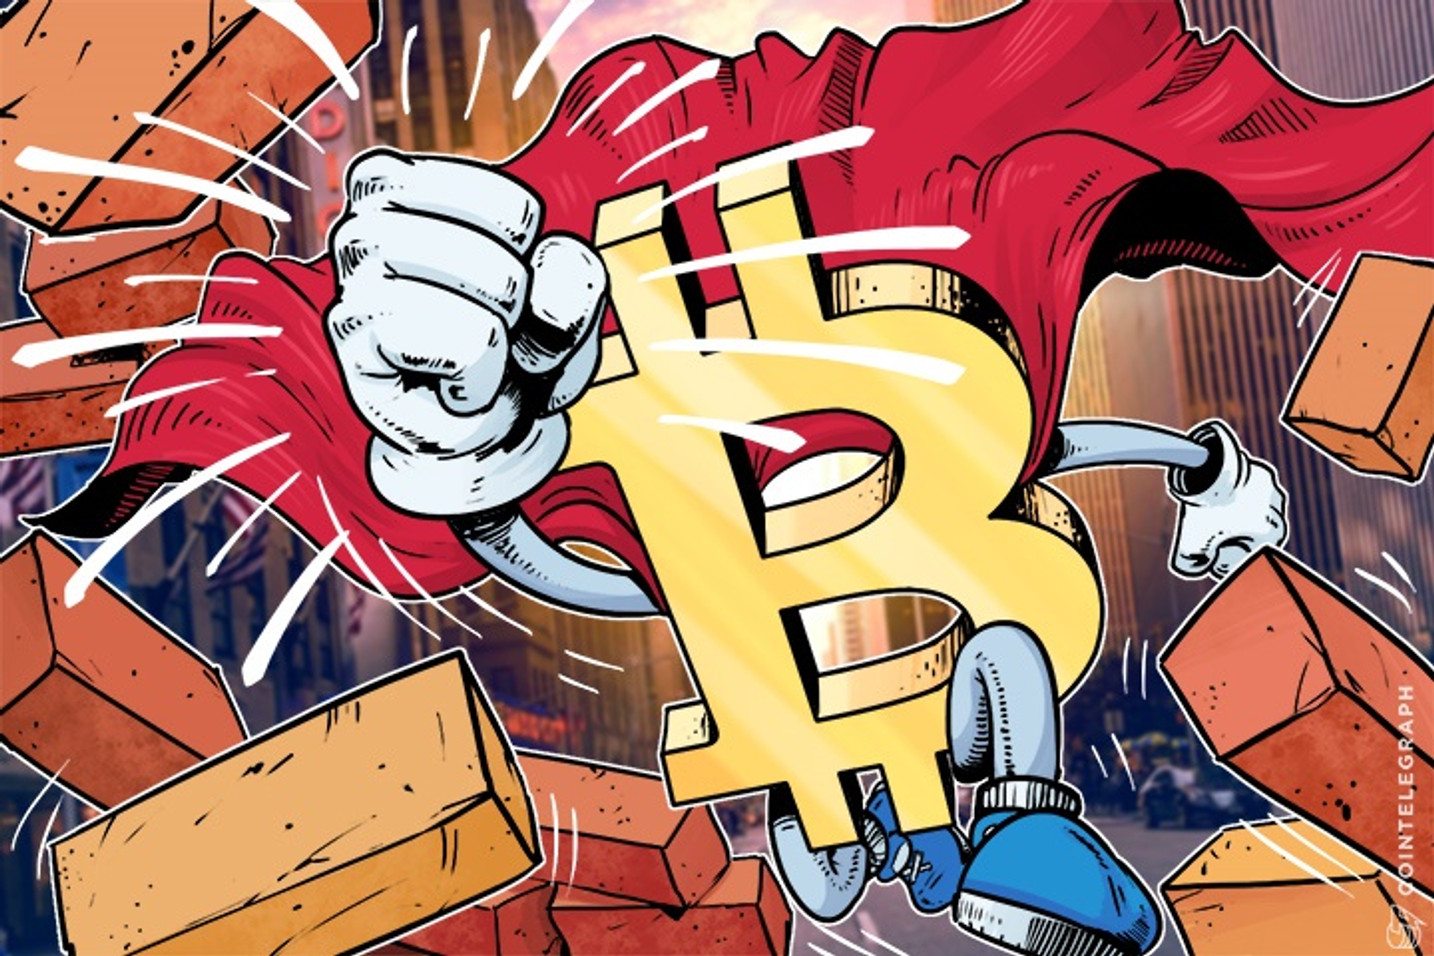 Is Bitcoin About to Breakout? Charts Suggest So